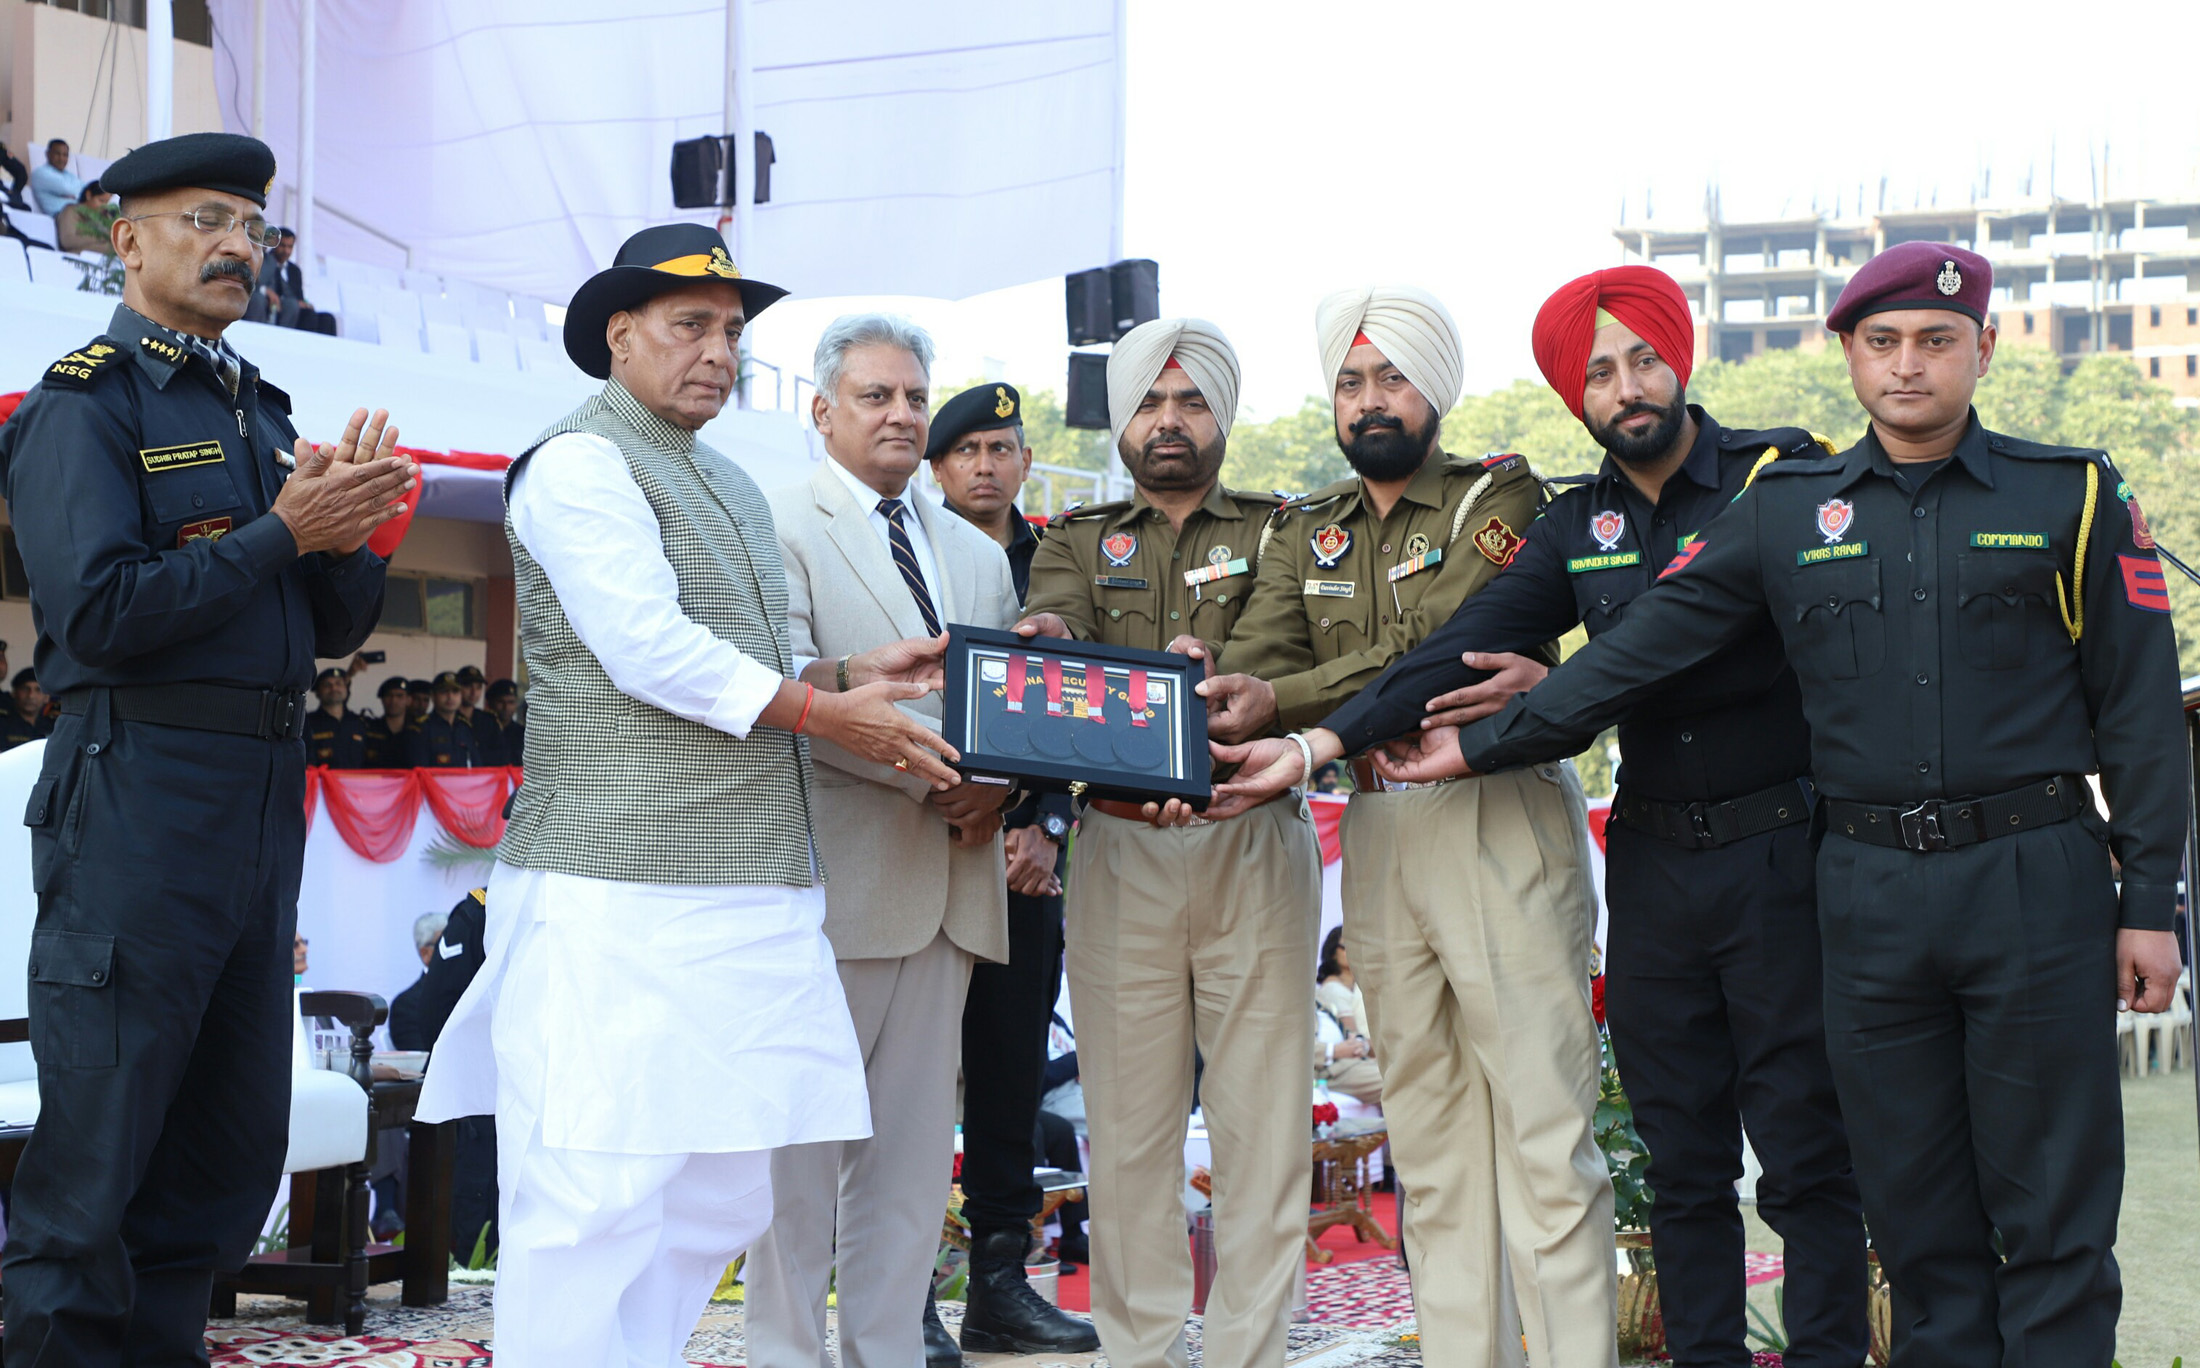 The Union Home Minister, Shri Rajnath Singh presenting the medals and trophies, during the Closing Ceremony of the 8th All India Police Commando Competition, at Manesar, Gurugram, in Haryana on January 20, 2018.  The Director General, NSG, Shri Sudhir Pratap Singh and the Director, IB, Shri Rajiv Jain are also seen.